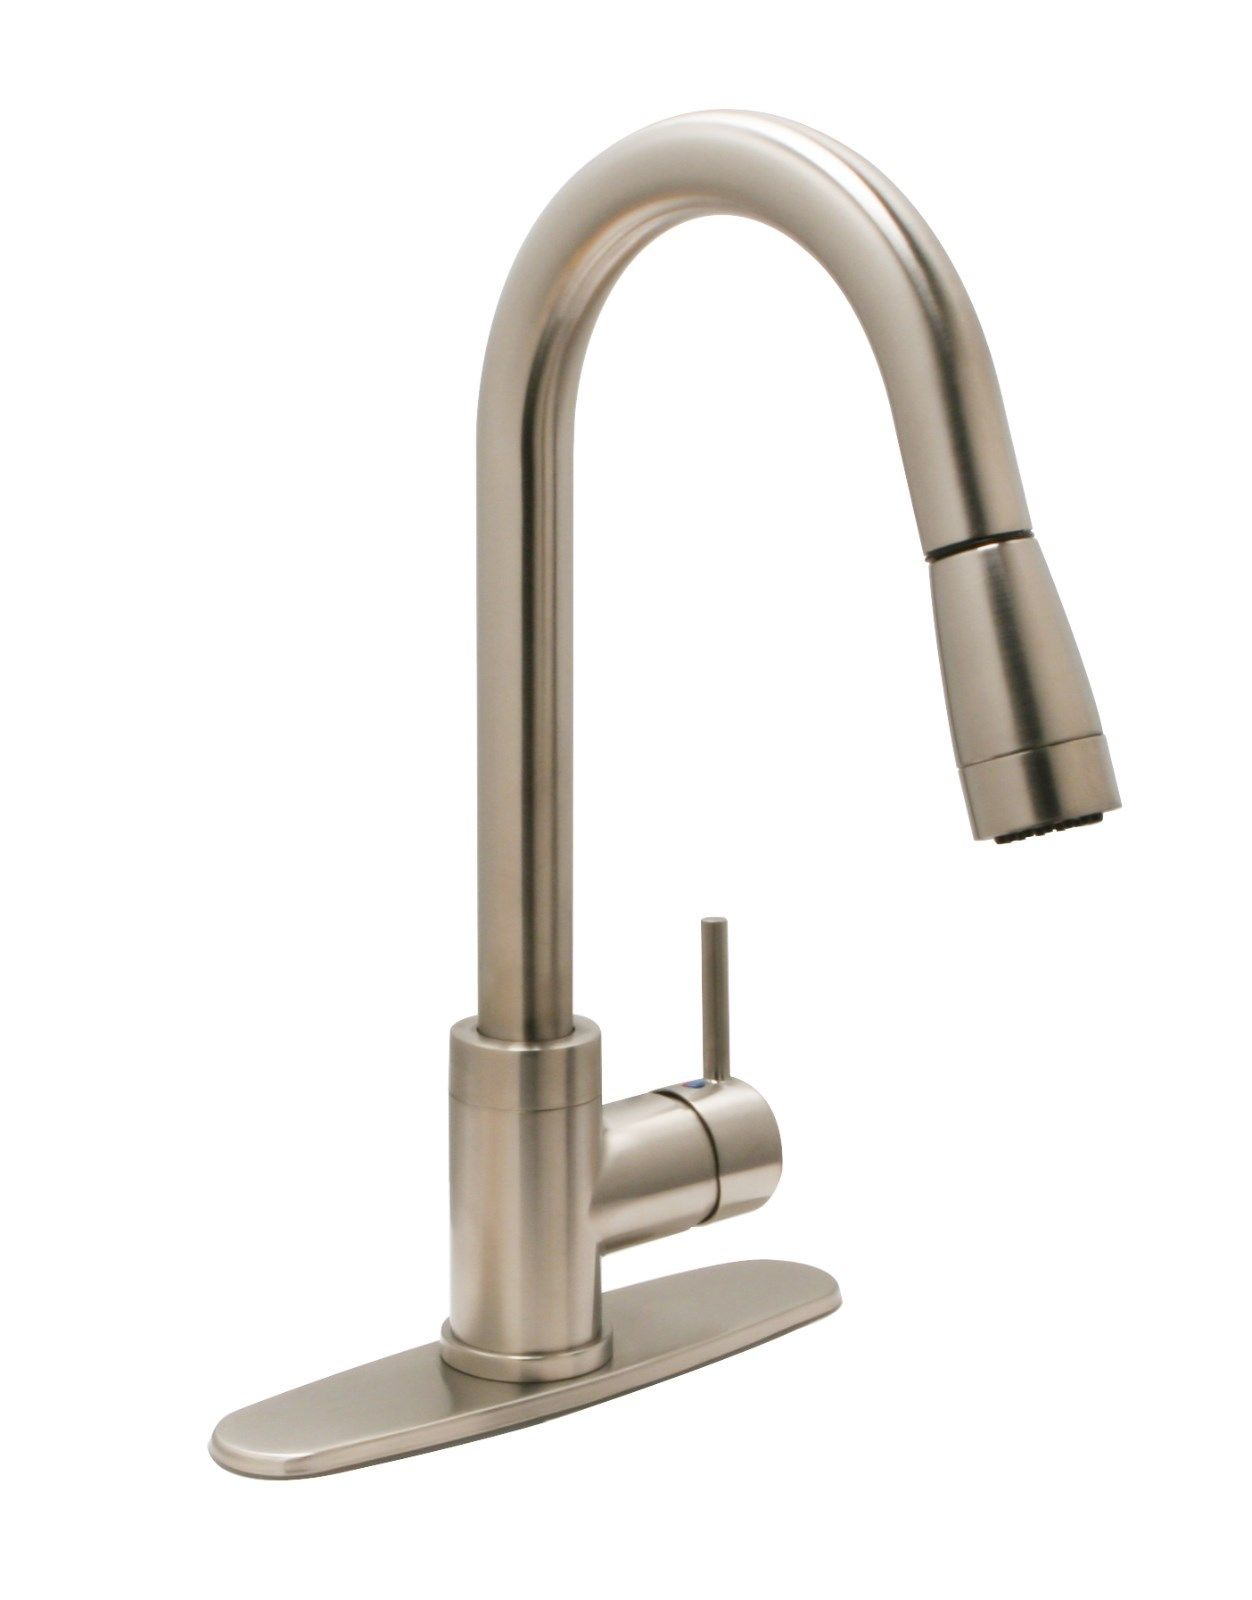 Charming 10 Photos To Satin Nickel Kitchen Faucet